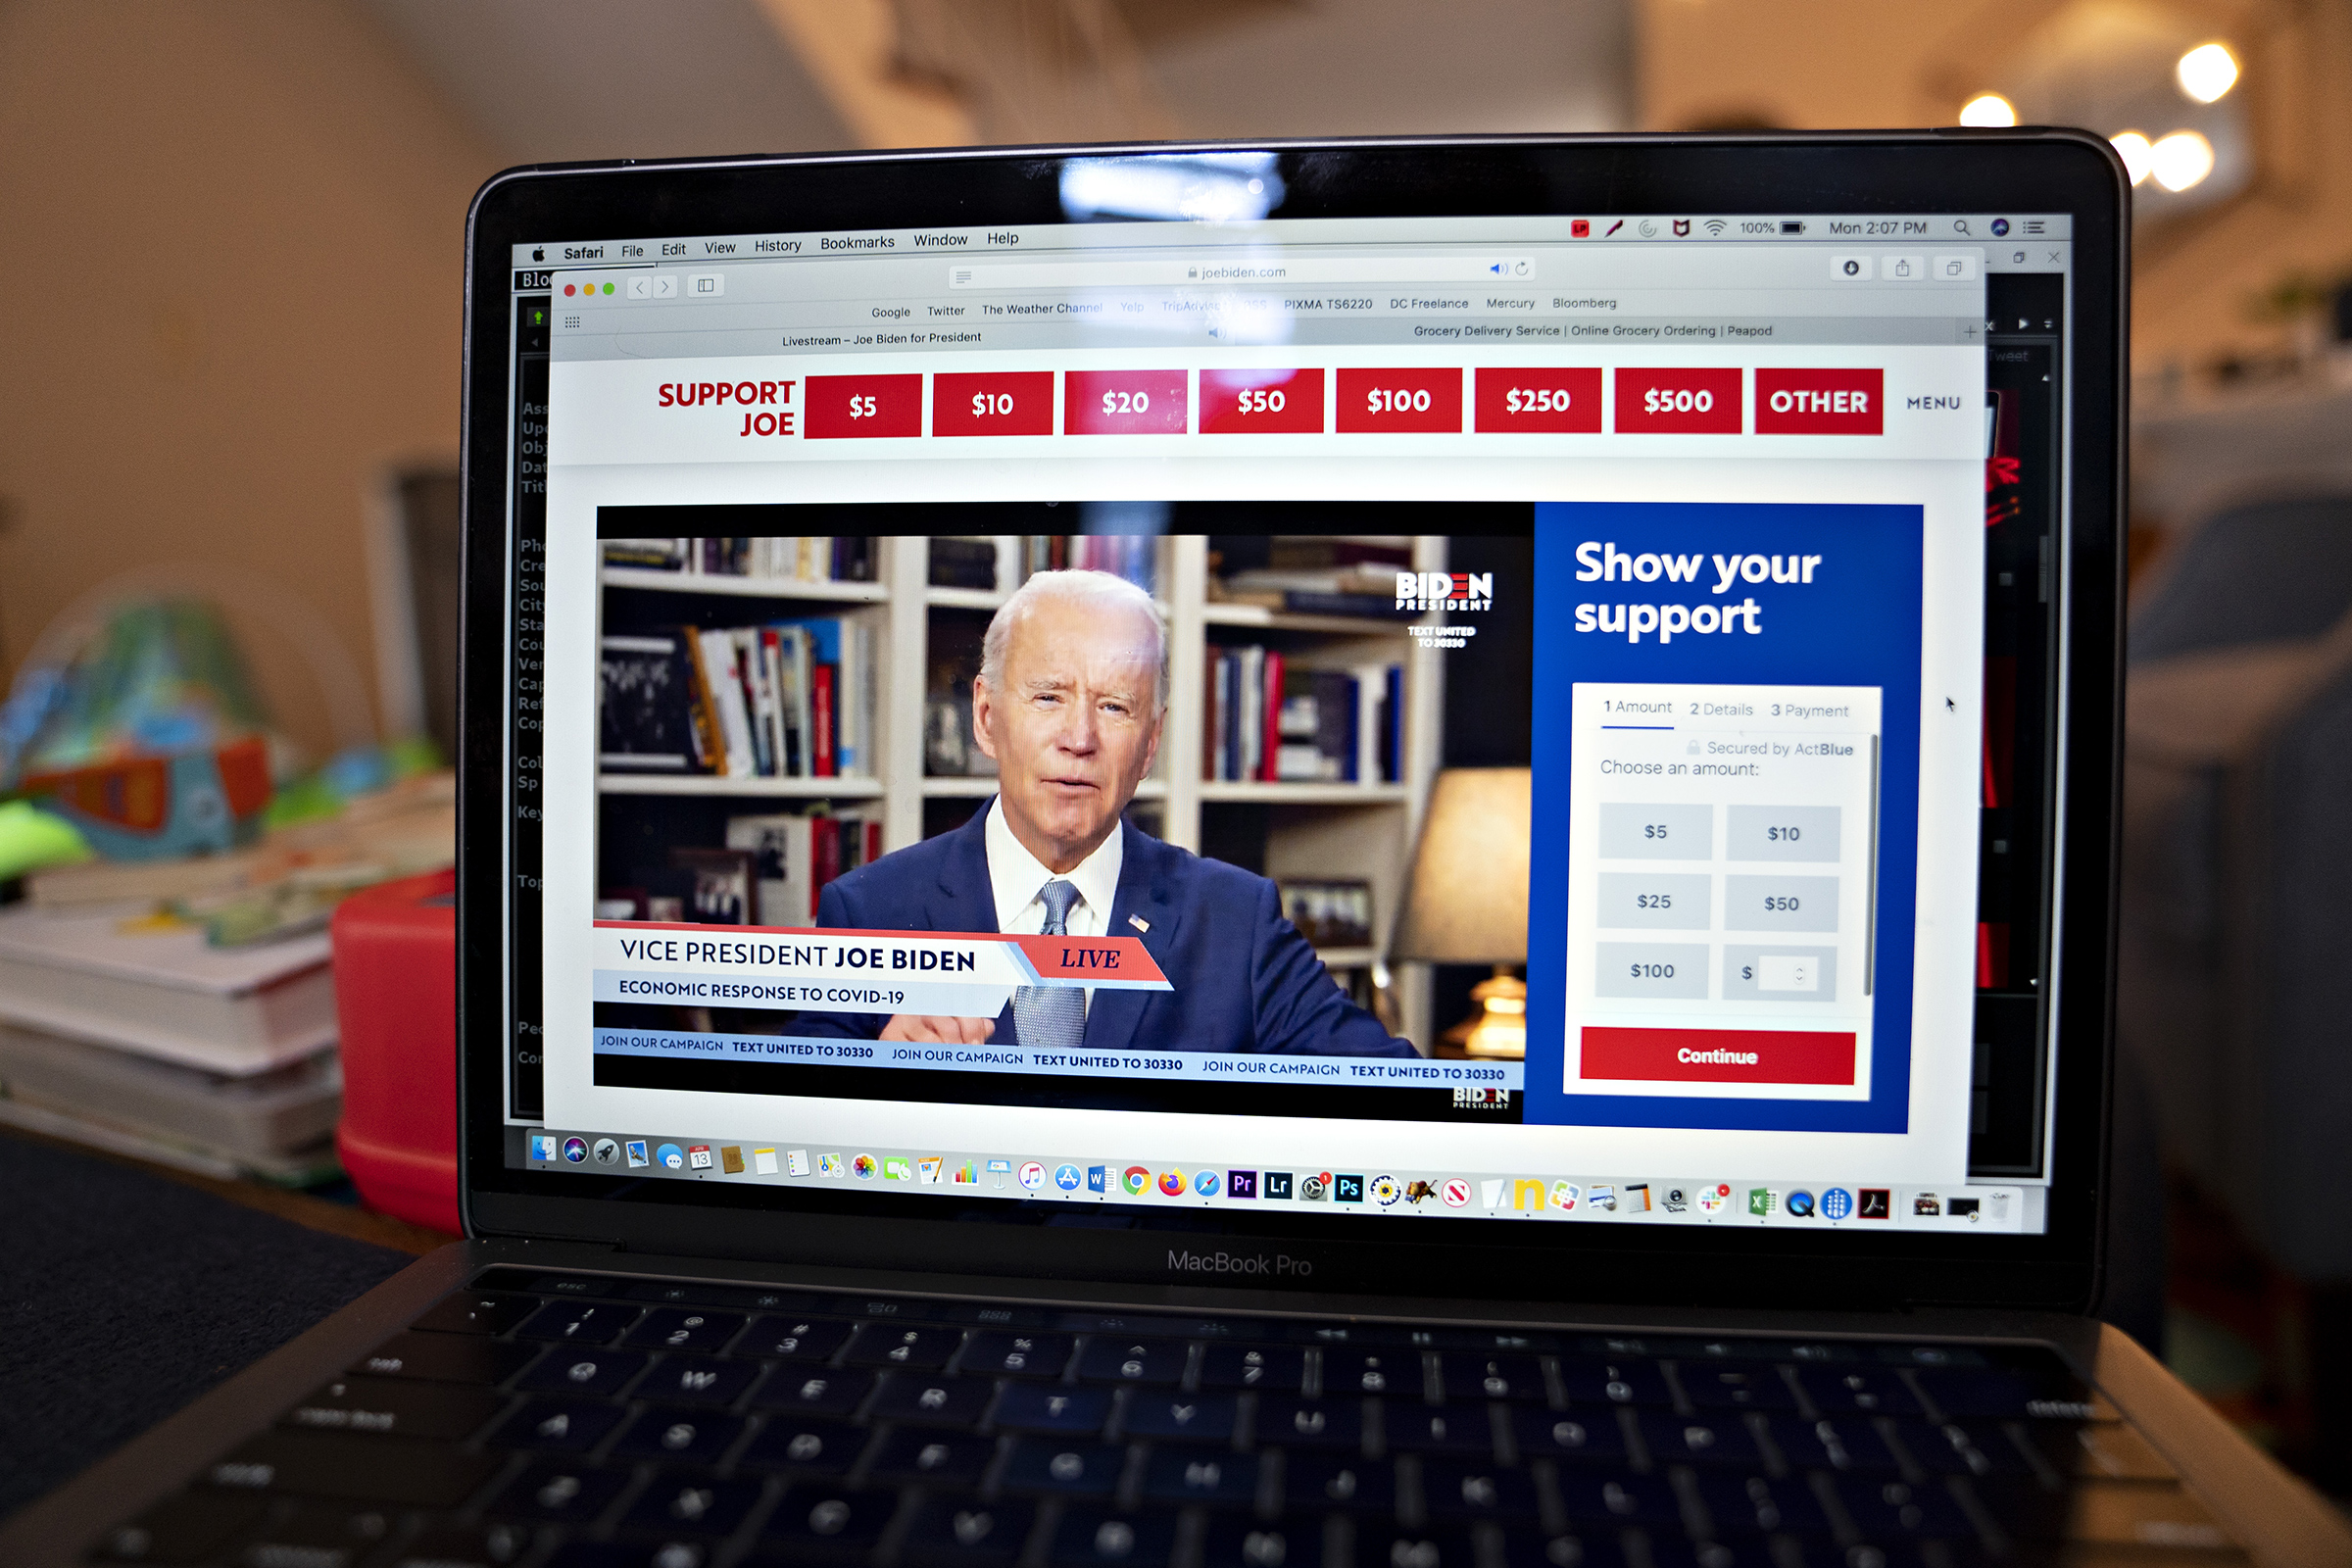 Former Vice President Joe Biden, presumptive Democratic presidential nominee, speaks during a virtual event seen on an Apple Inc. laptop computer in Arlington, Virginia, on April 13